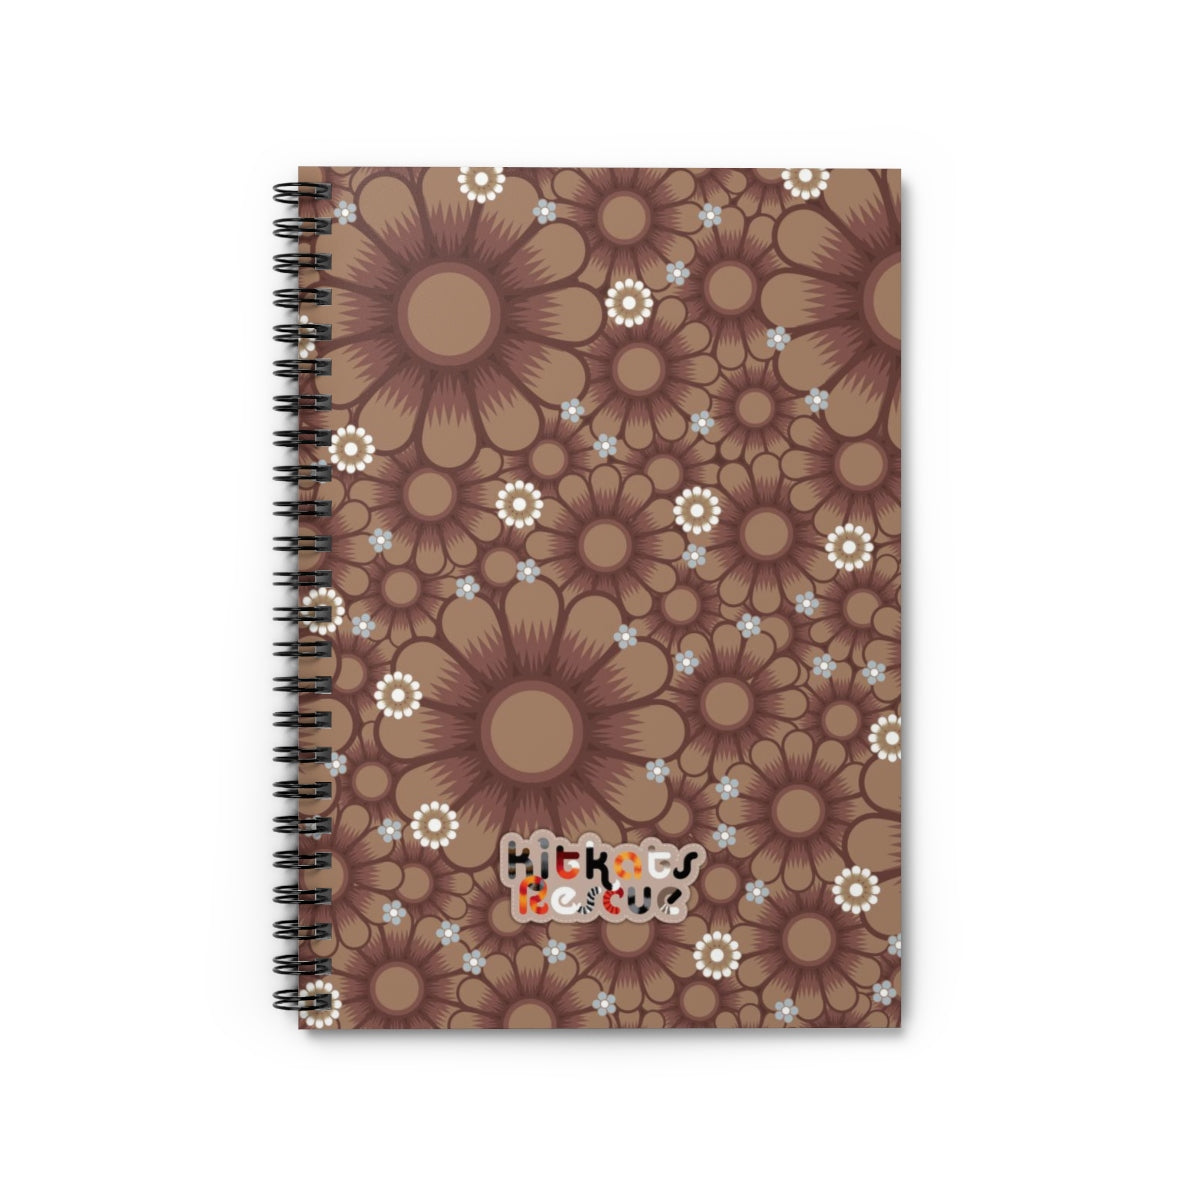 KitKats Rescue . Taupe Flower Bed . Spiral Notebook - Ruled Line